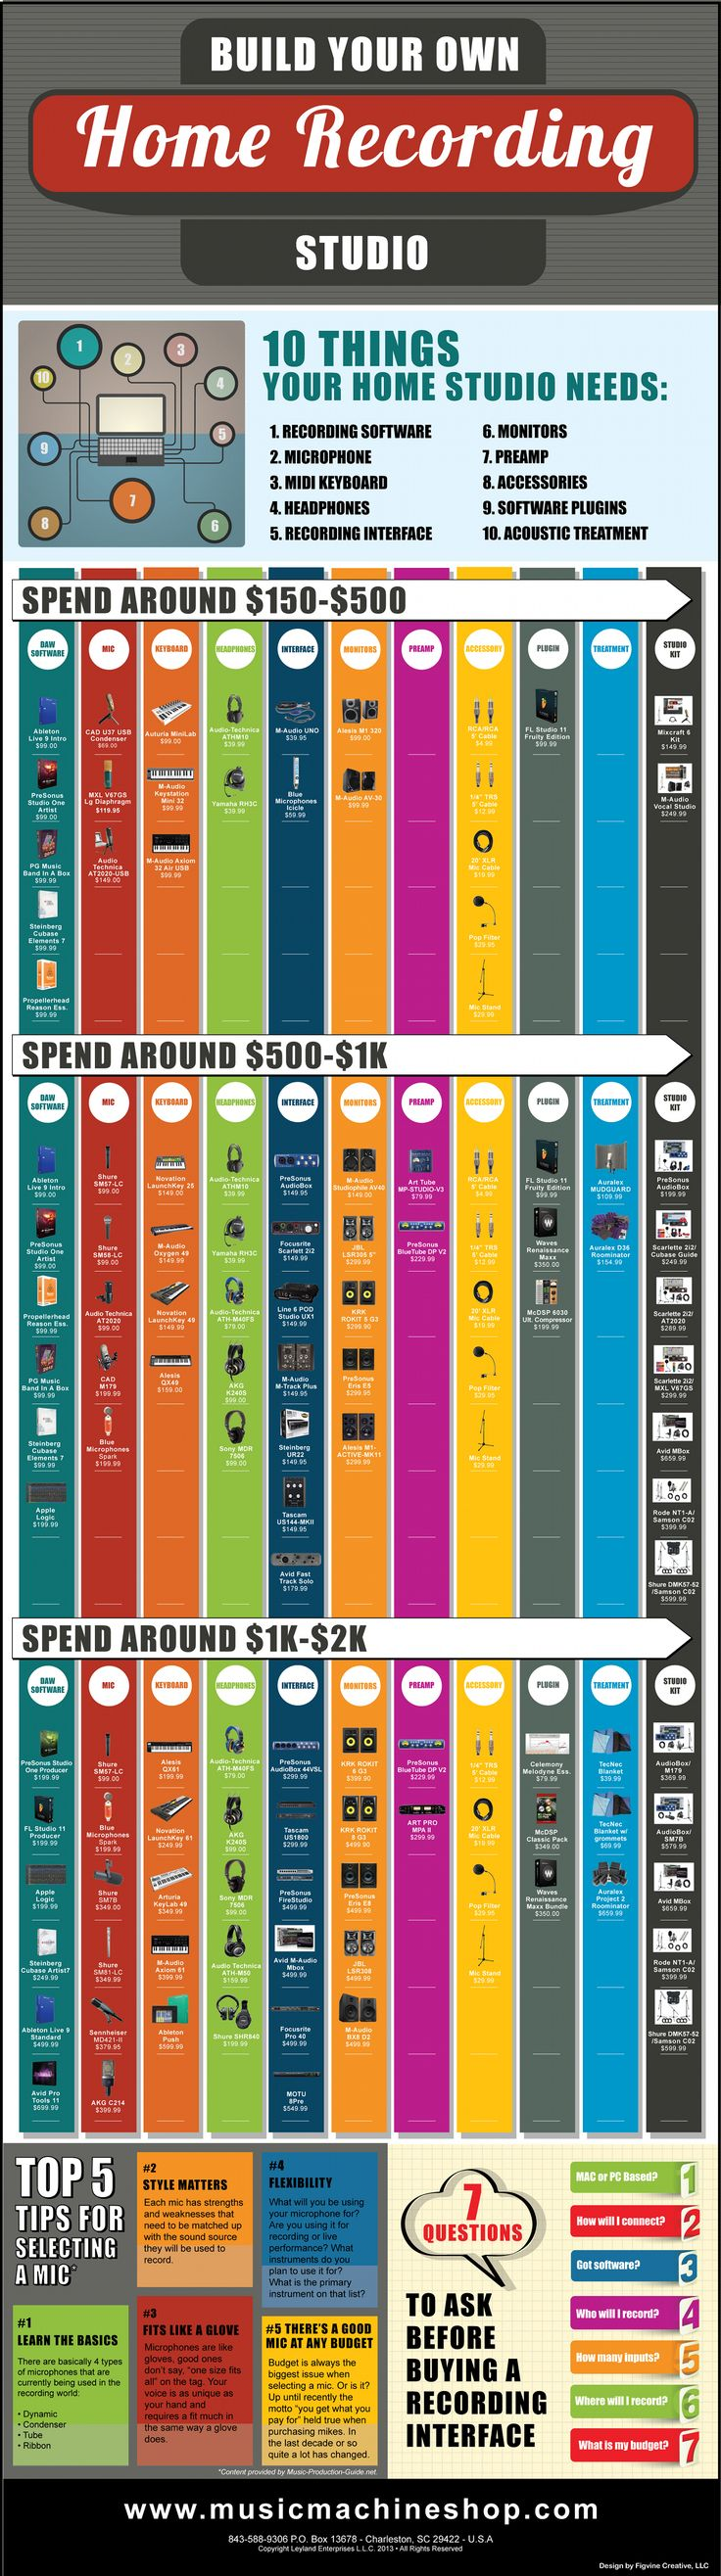 Build Your Own Recording Studio Infographic (Large)